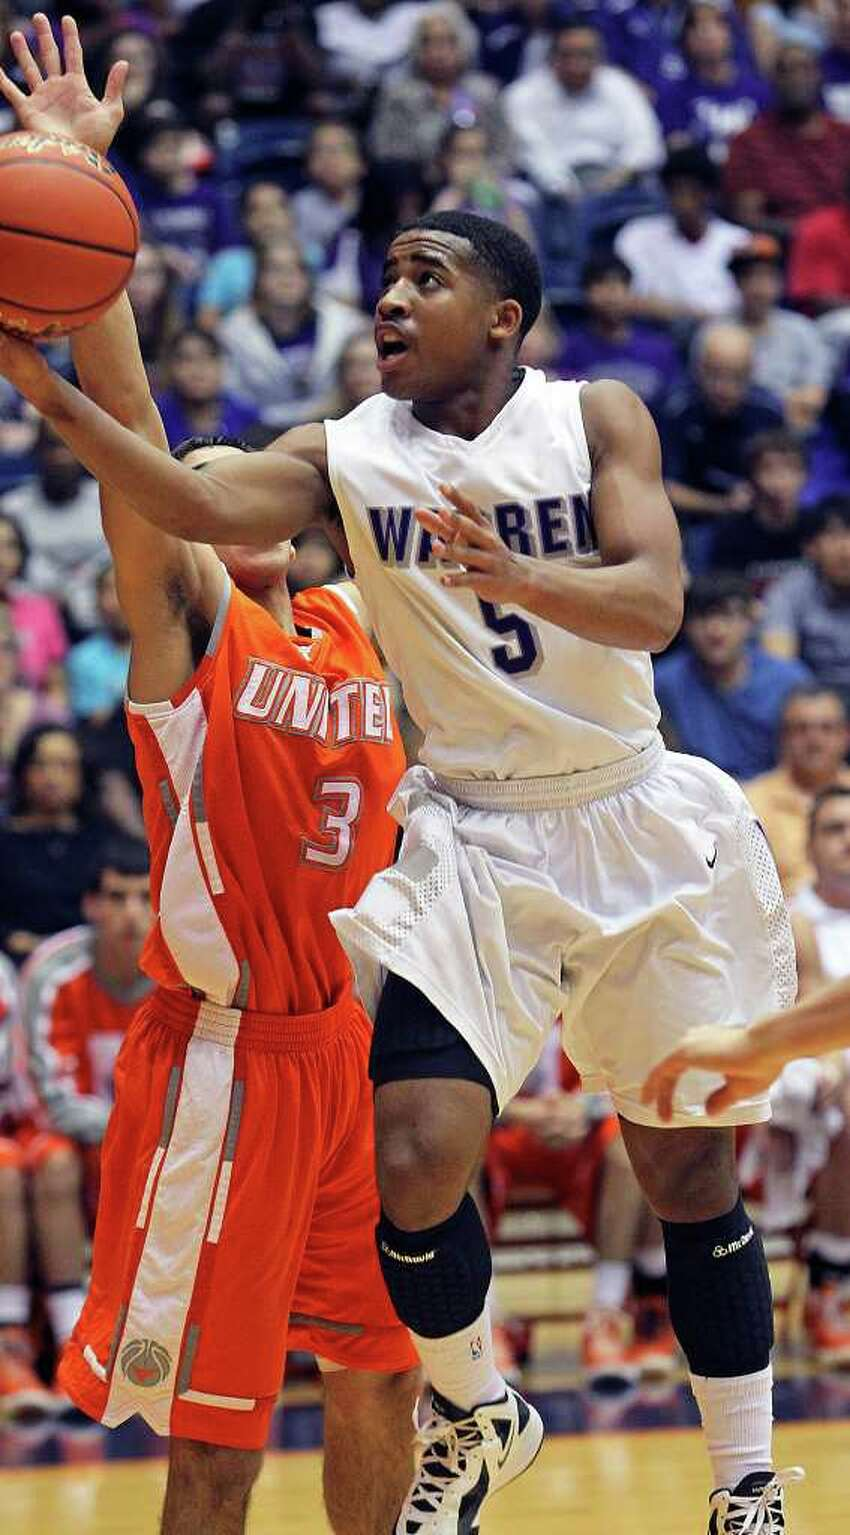 Marcus Keene turns for a quick shot in the lane for the Warriors against Raul Moreno as Warren beats Laredo United 83-50 in the first round of the Region IV 5A basketball tournament at the UTSA Convocation Center on March 2, 2012 Tom Reel/ San Antonio Express-News